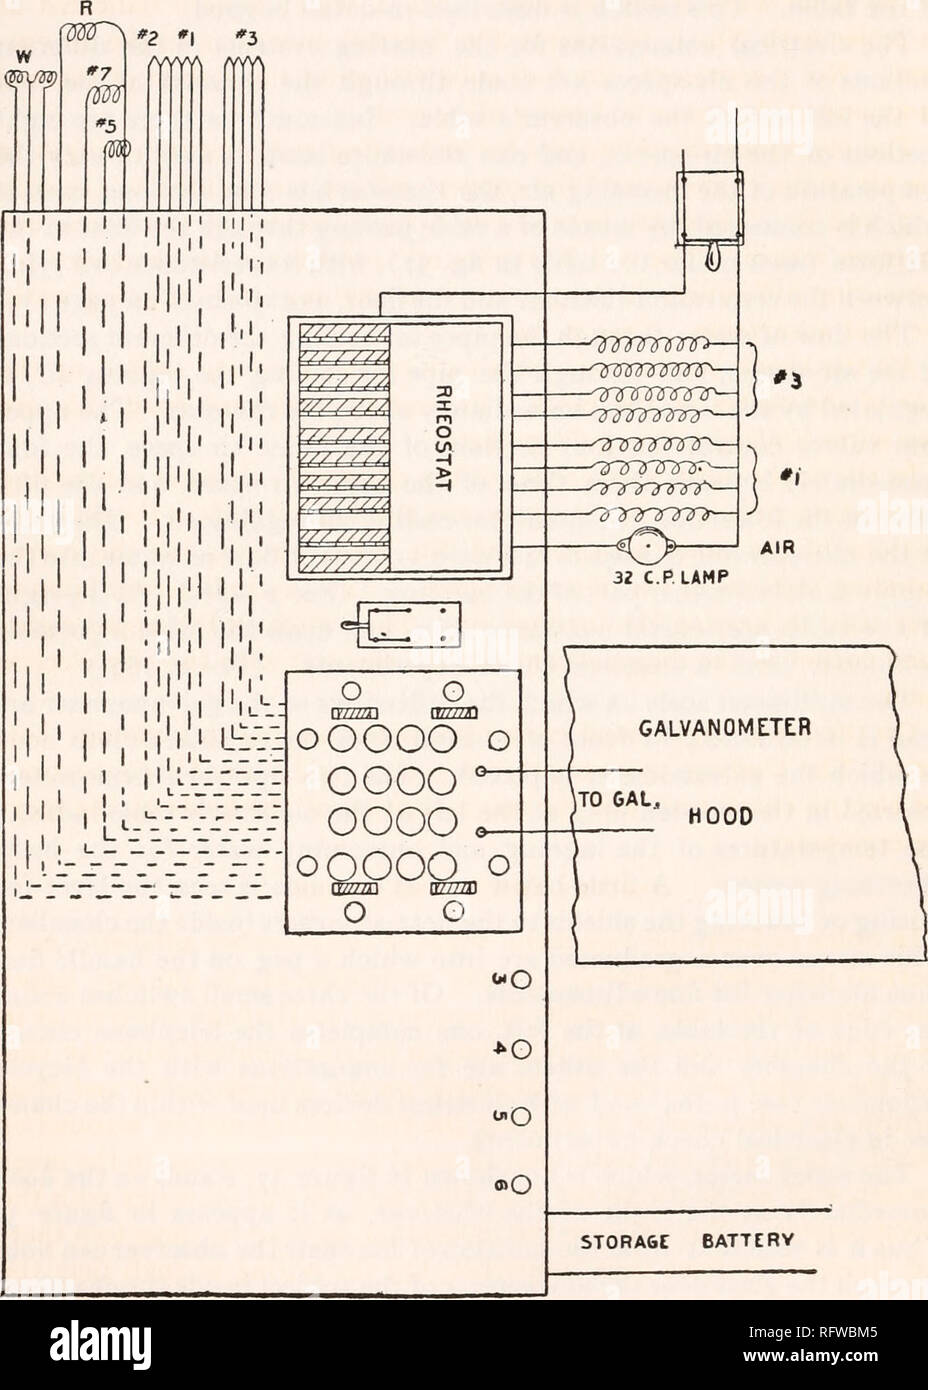 medium resolution of carnegie institution of washington publication 133 a respiration calorimeter electrical connections on the